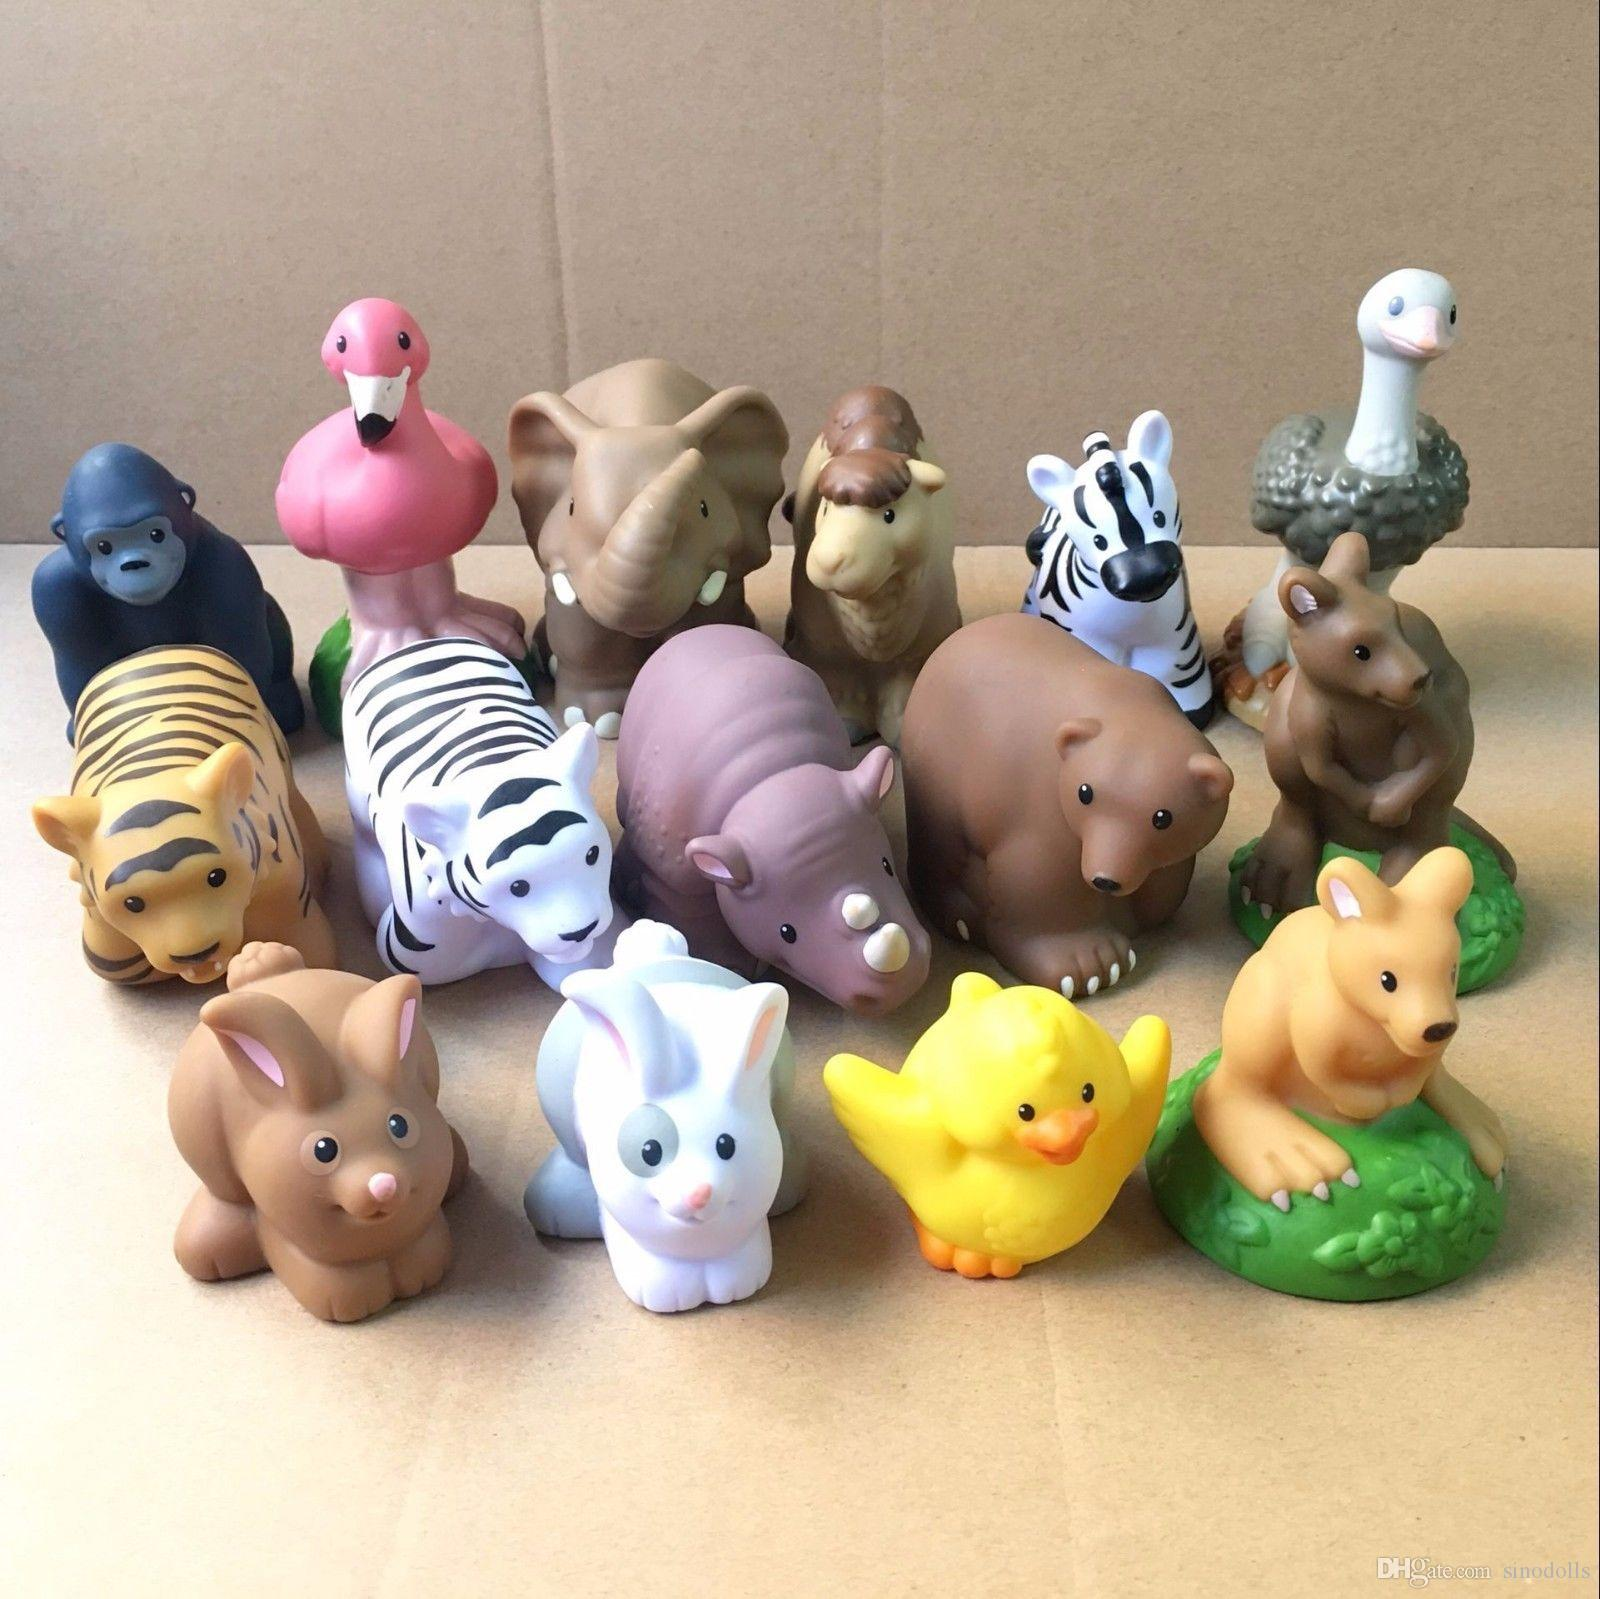 Glomorous 2018 Fisher Price Little People Farm Zoo Animal Rabbit Duck Zebra Nosound Action Figure Toy From 2018 Fisher Price Little People Farm Zoo Animal Rabbit Duck baby Fisher Price Zoo